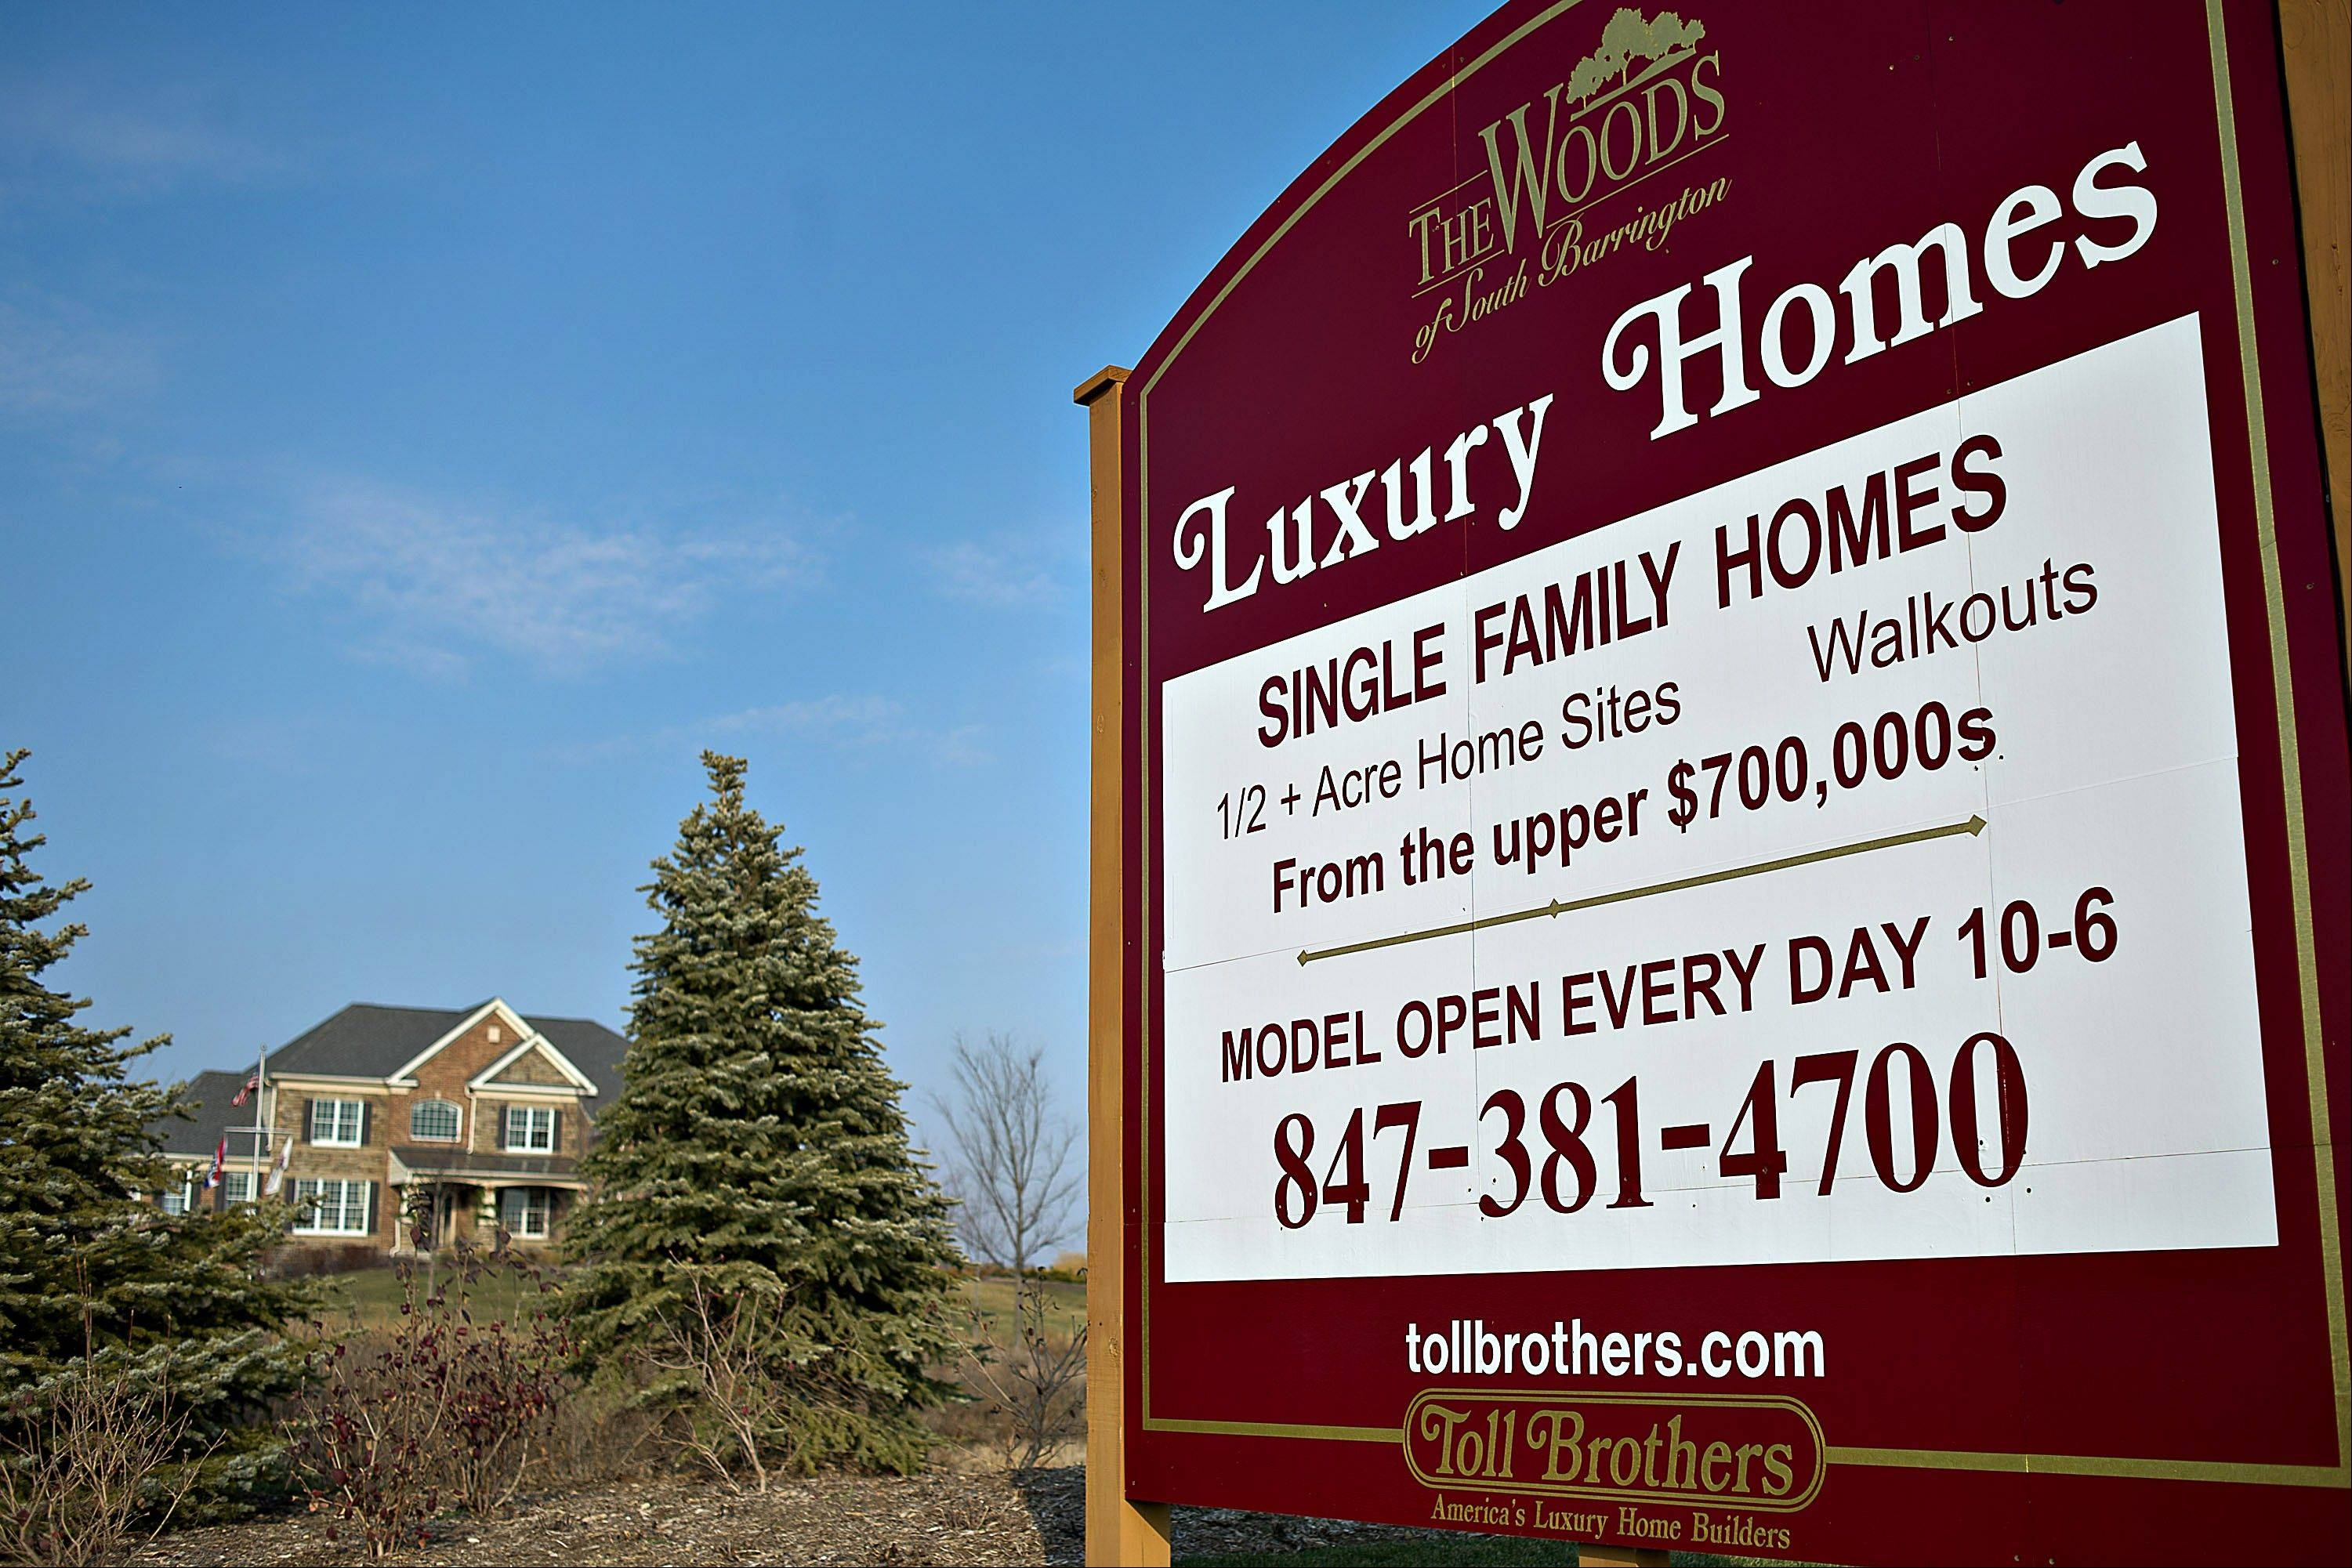 Luxury homebuilder Toll Brothers Inc., developer of The Woods of South Barrington, says its fiscal fourth-quarter net income soared, helped by a large income tax benefit and a 48 percent rise in revenue. The luxury homebuilder delivered more homes and its order backlog increased.